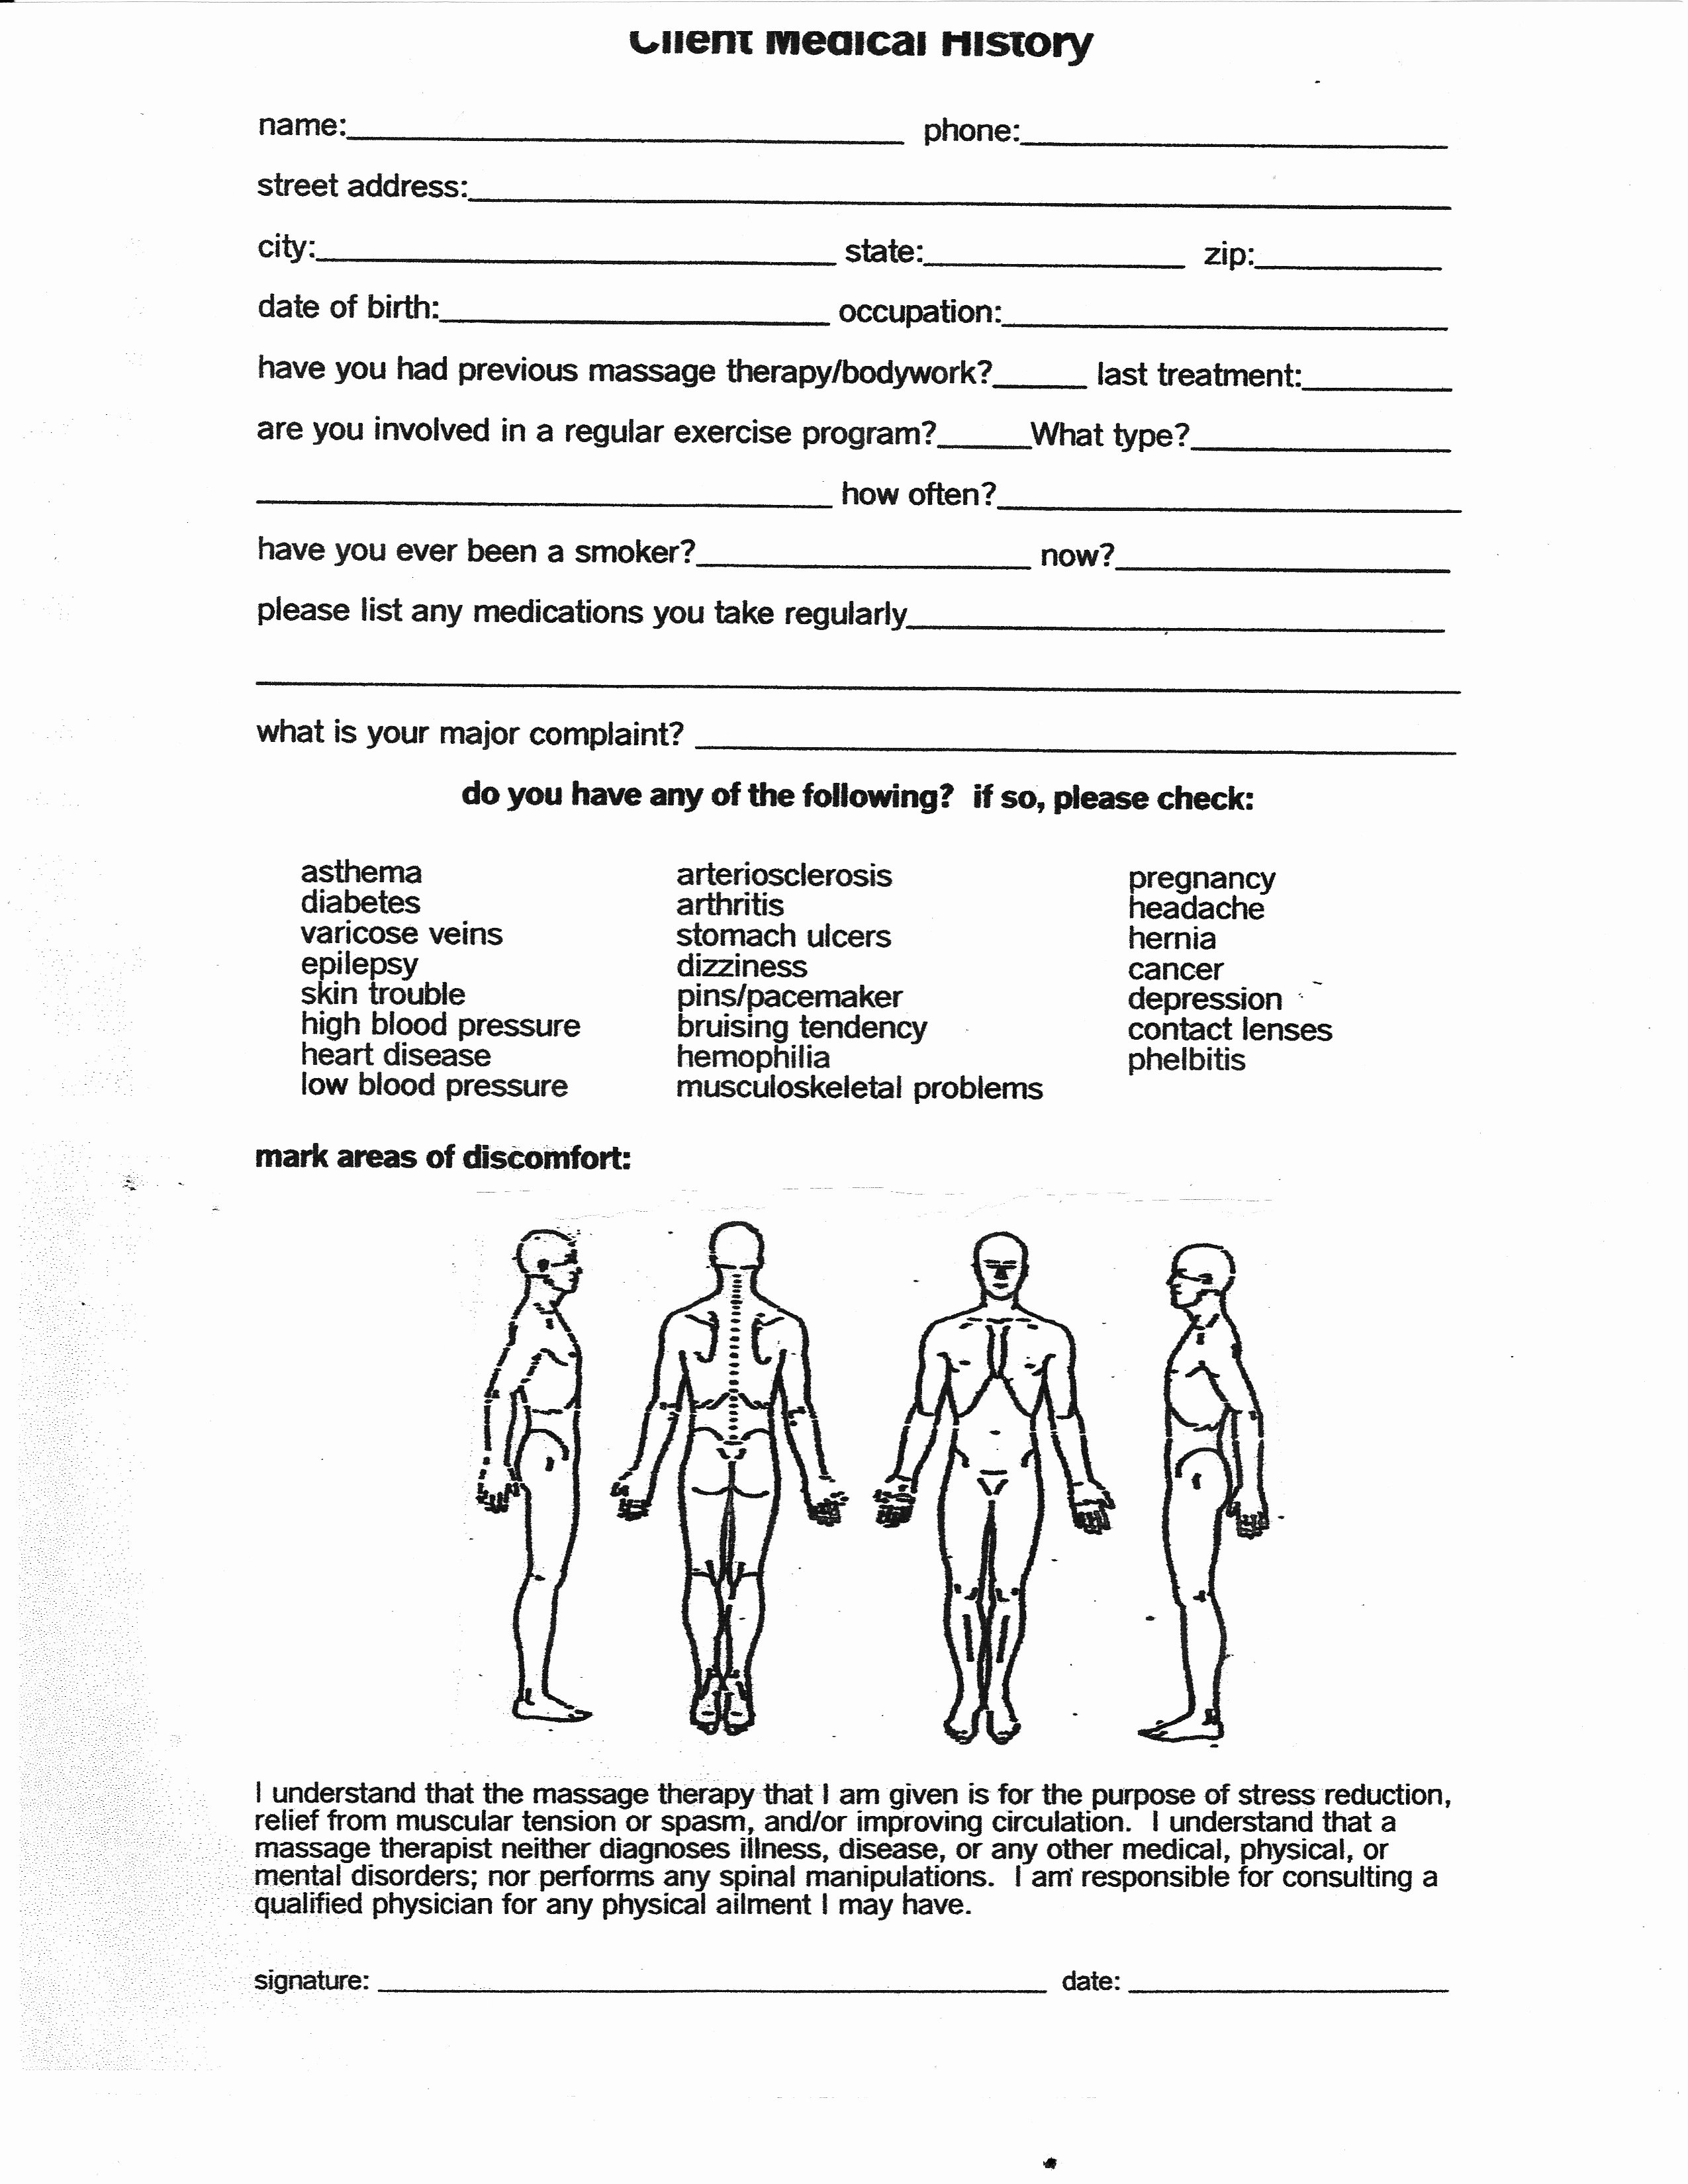 Counseling Intake form Template Fresh Intake form for Massage therapy